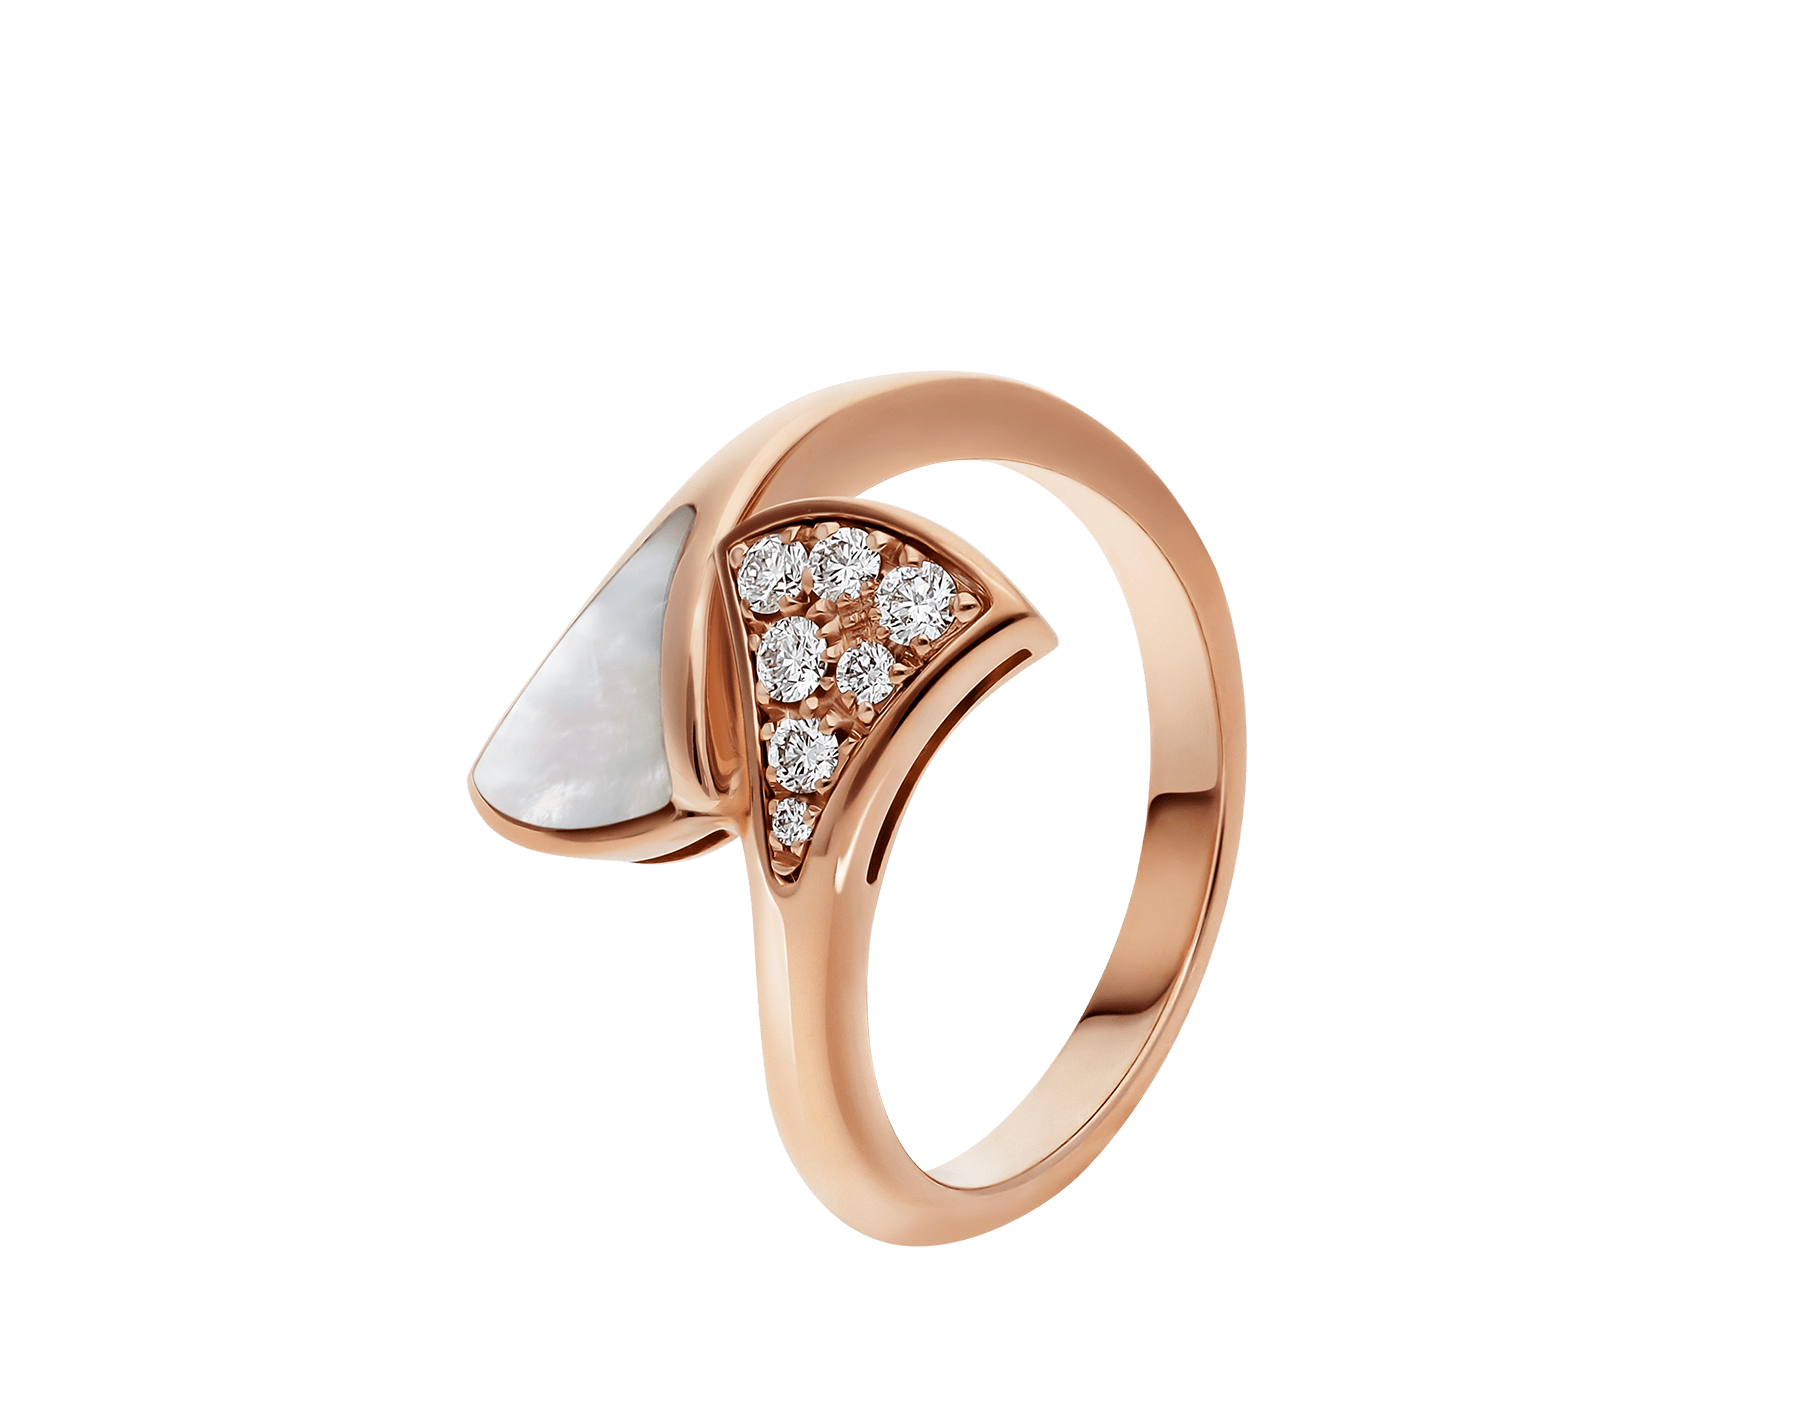 DIVAS' DREAM small contraire ring in 18 kt rose gold, set with mother-of-pearl and pavé diamonds (0.10 ct). AN858003 image 1